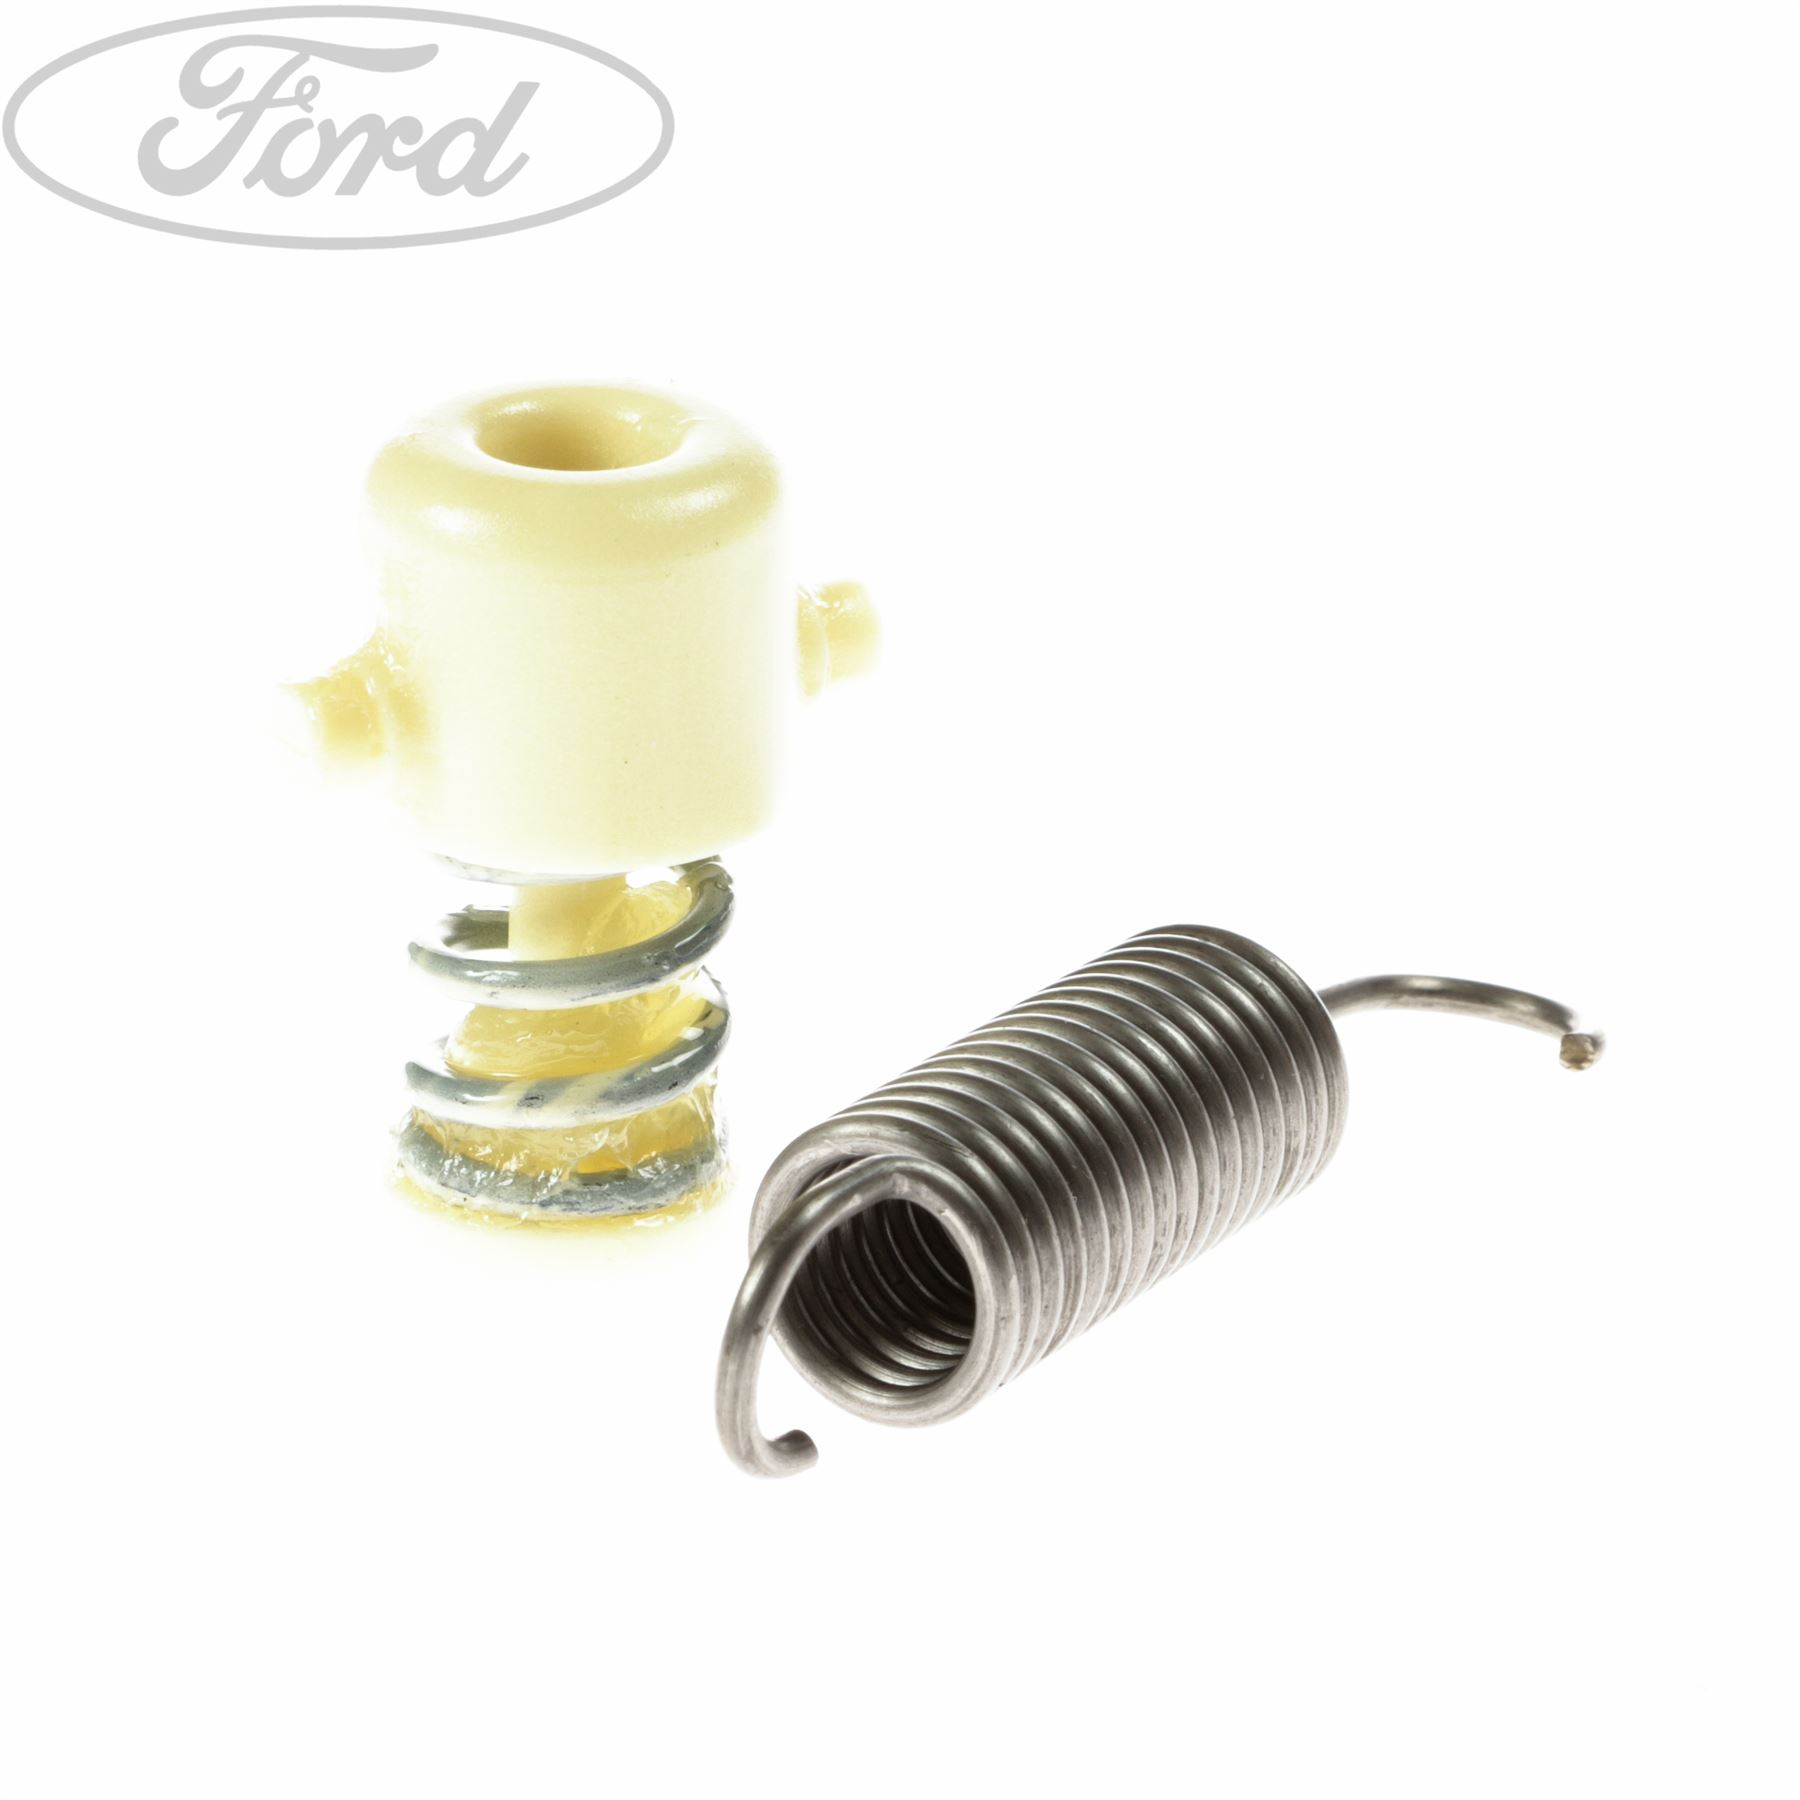 hight resolution of details about genuine ford focus mk2 clutch pedal spring kit 1463580